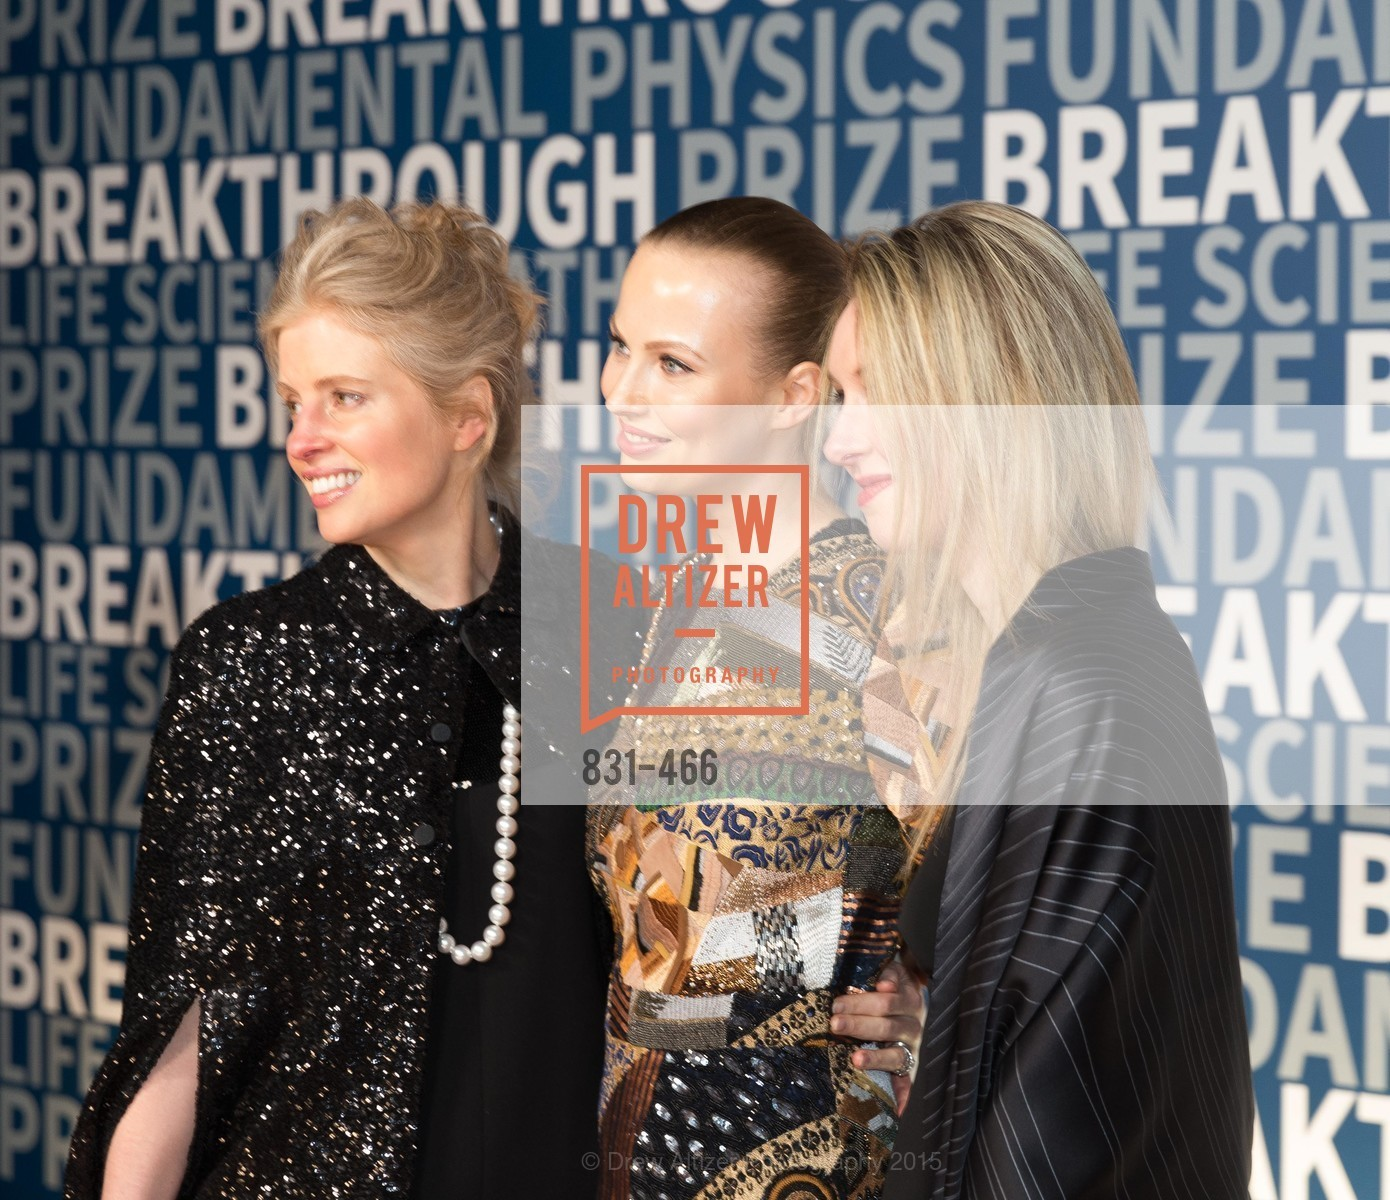 Laura Arrillaga-Andreessen, Julia Milner, Elizaberth Holmes, THE BREAKTHROUGH PRIZE Hosted By Seth MacFarlane, Ames Research Center. Naval Air Station, Moffett Field, November 8th, 2015,Drew Altizer, Drew Altizer Photography, full-service event agency, private events, San Francisco photographer, photographer California